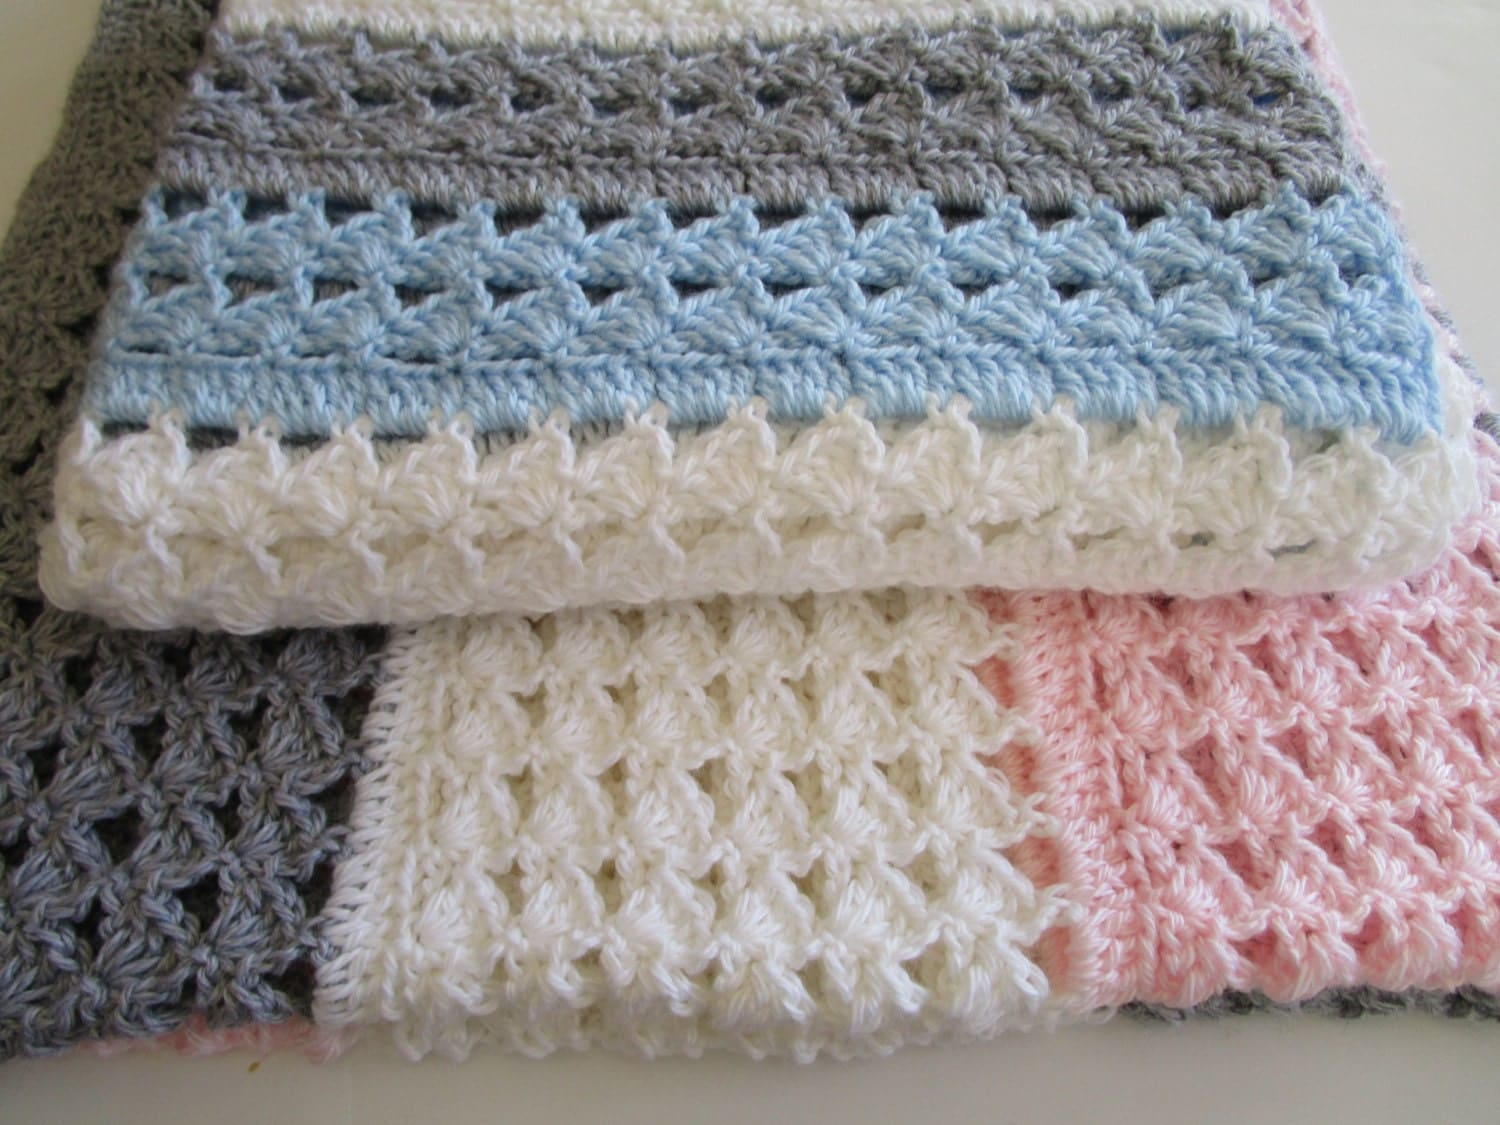 Crochet pattern fairfax baby afghan pattern babyghan afghan easy crochet blanket pattern slanted shell stitch variation crochet afghan christening baby blanket instructions to make it any size bankloansurffo Gallery